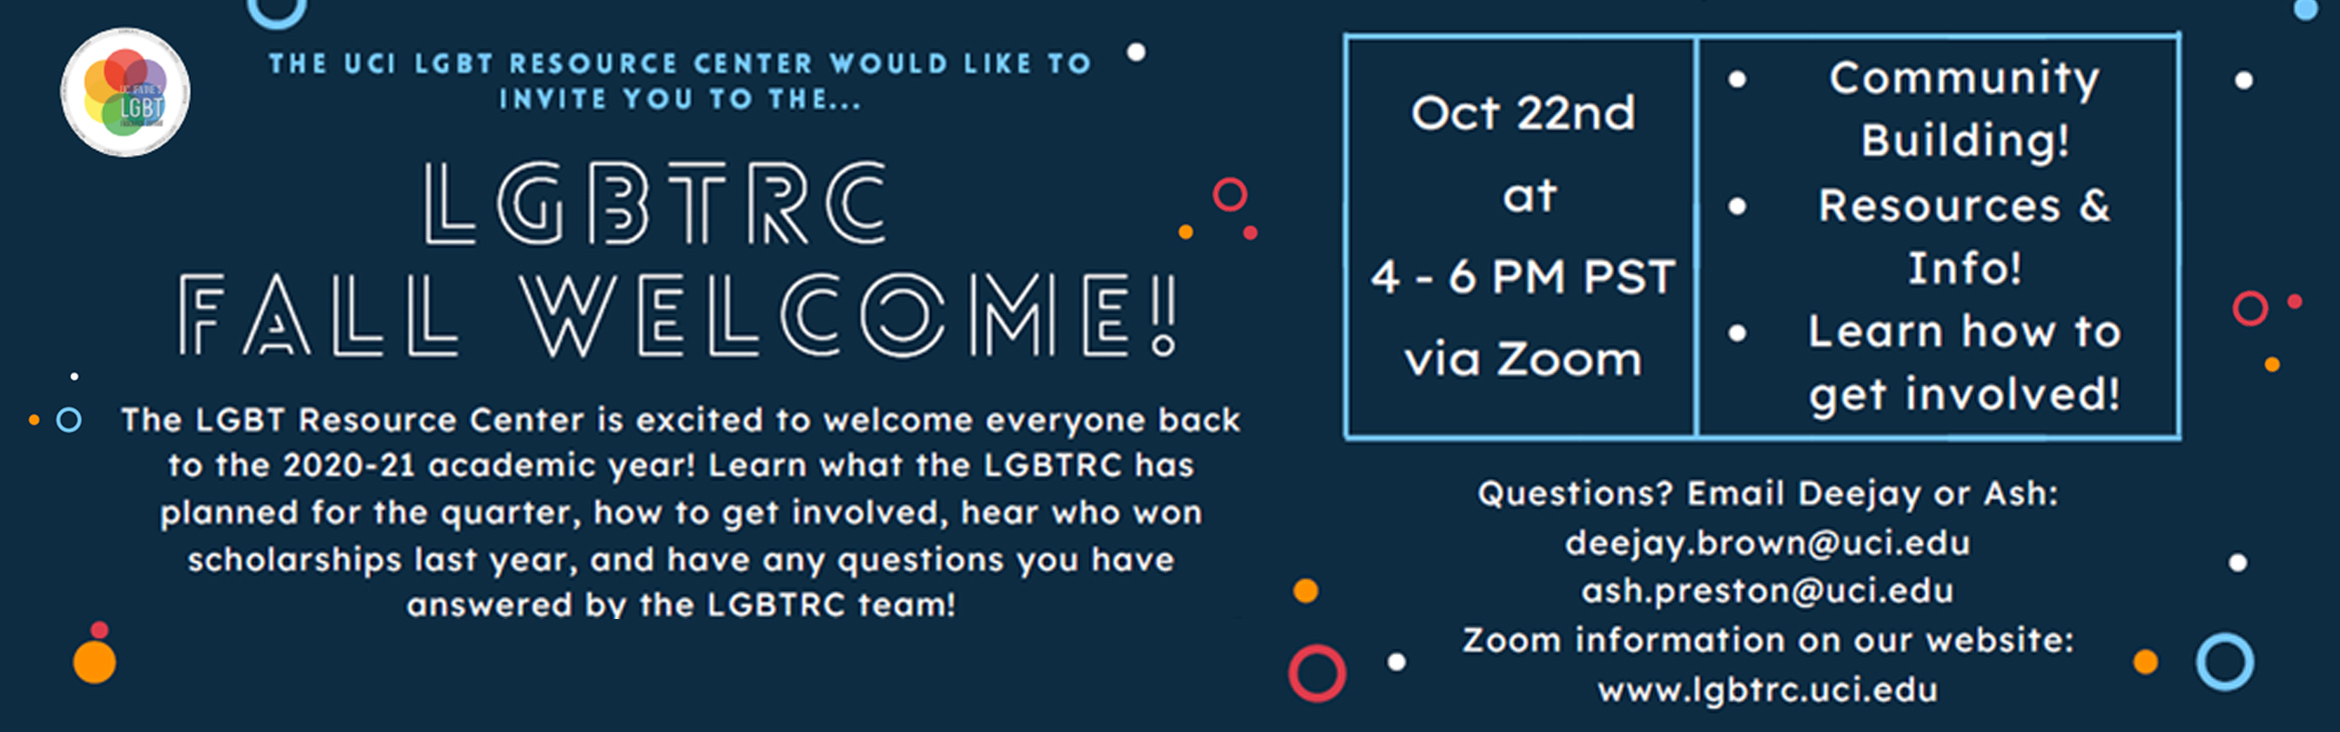 The UCI LGBT resource center would like to invite you to the ... lgbtrc fall welcome!  The LGBT Resource Center is excited to welcome everyone back to the 2020-21 academic year! Learn what the LGBTRC has planned for the quarter, hot to get involved, hear